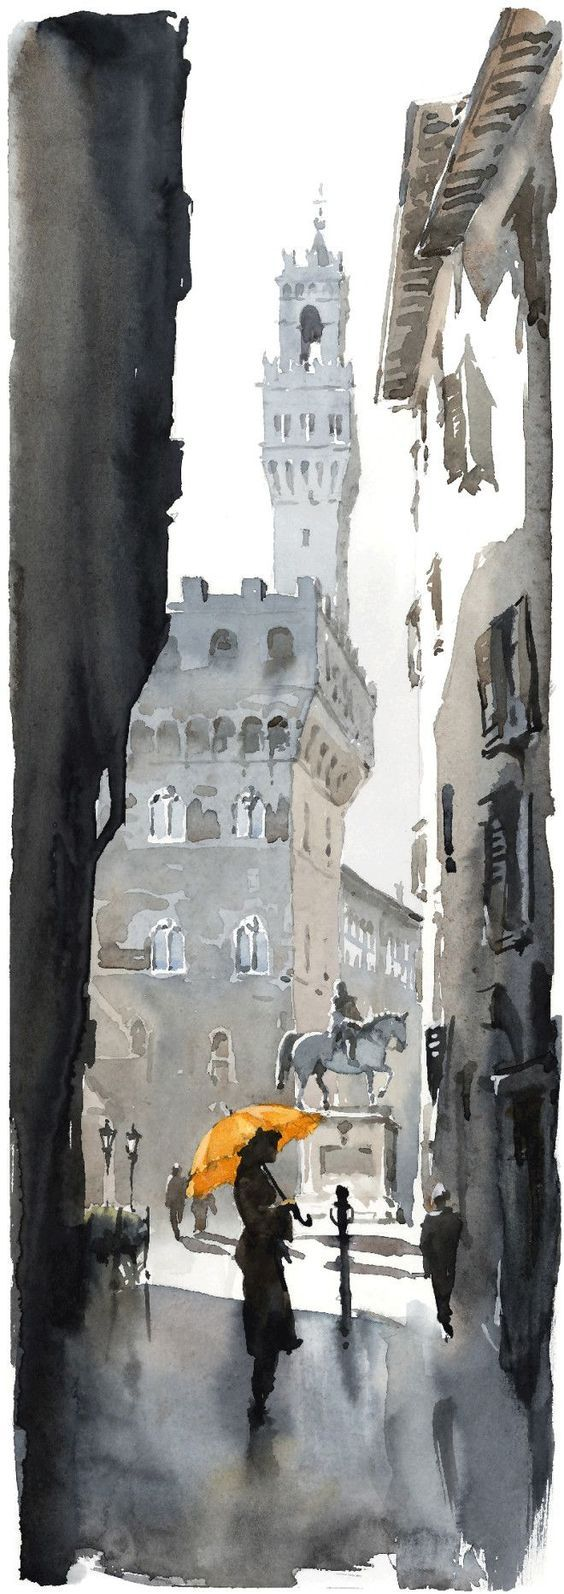 Igor Sava  Some mediums force us to use negative space in interesting ways. How does this change spatial relations?